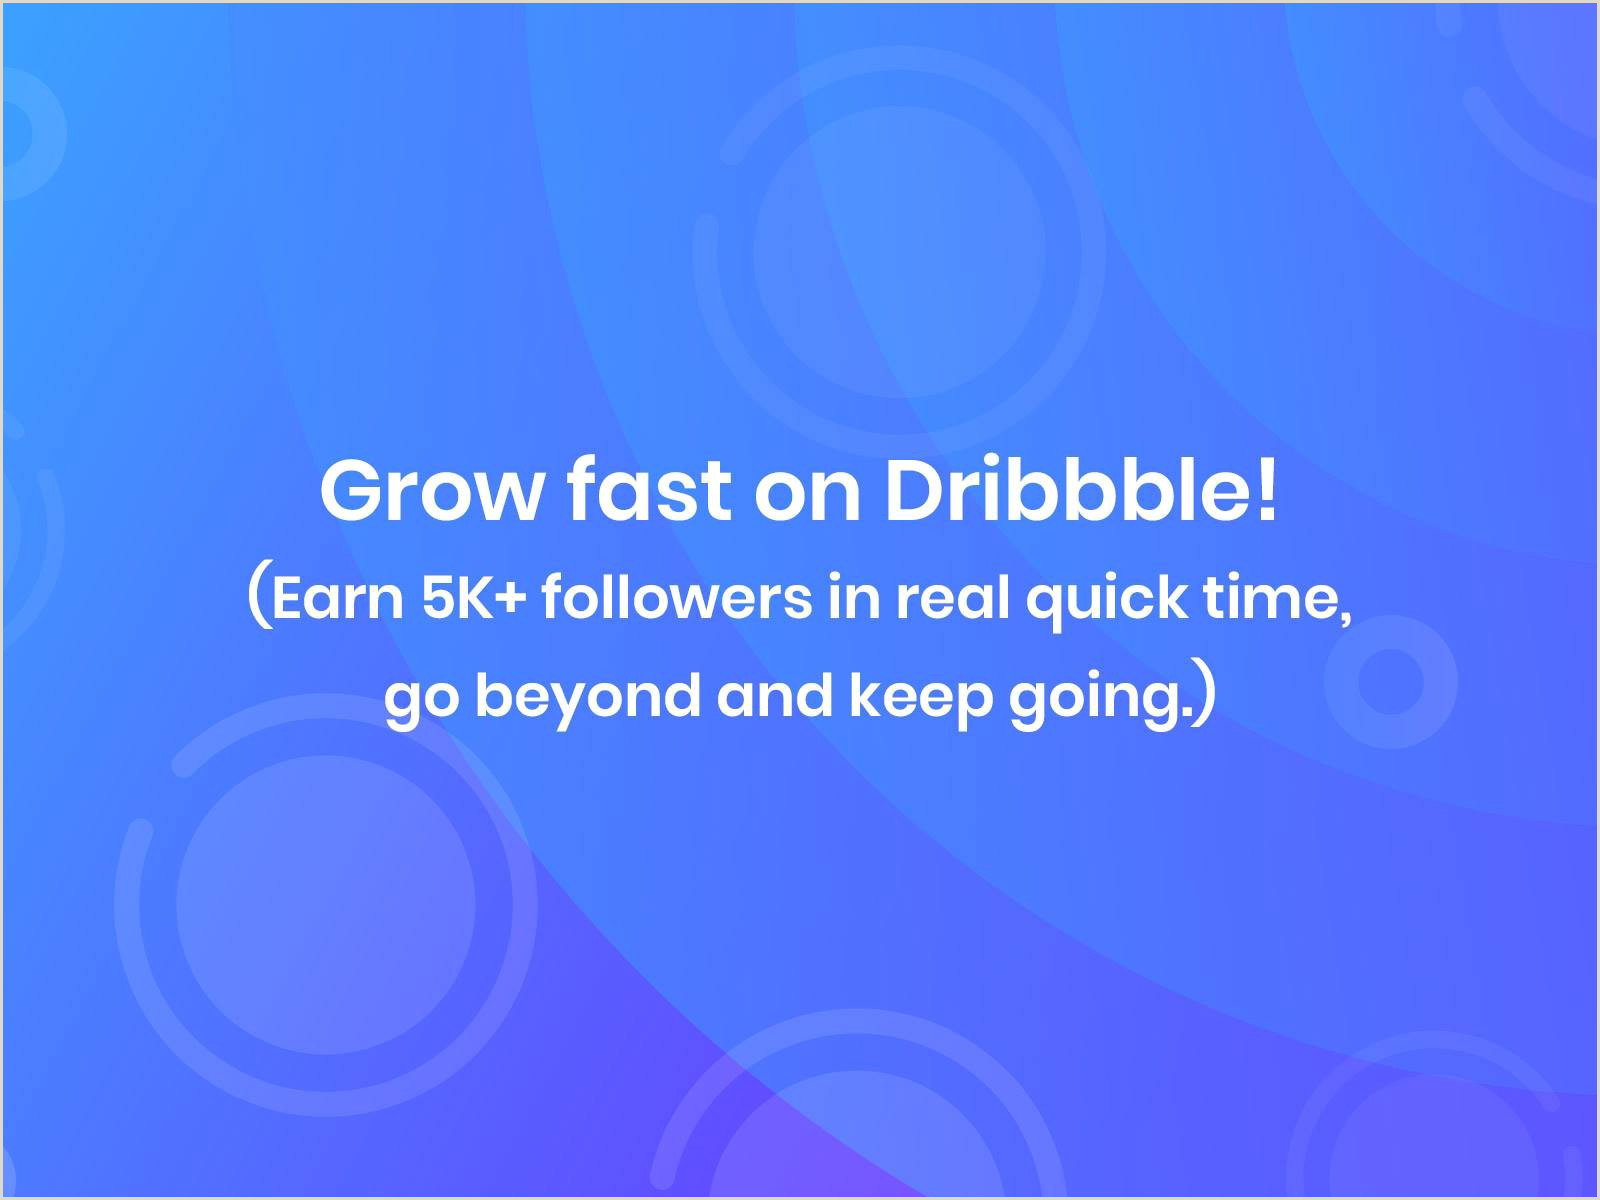 Best Time To Post On Dribbble How I Made 5k Dribbble Followers Within 3 Months And You